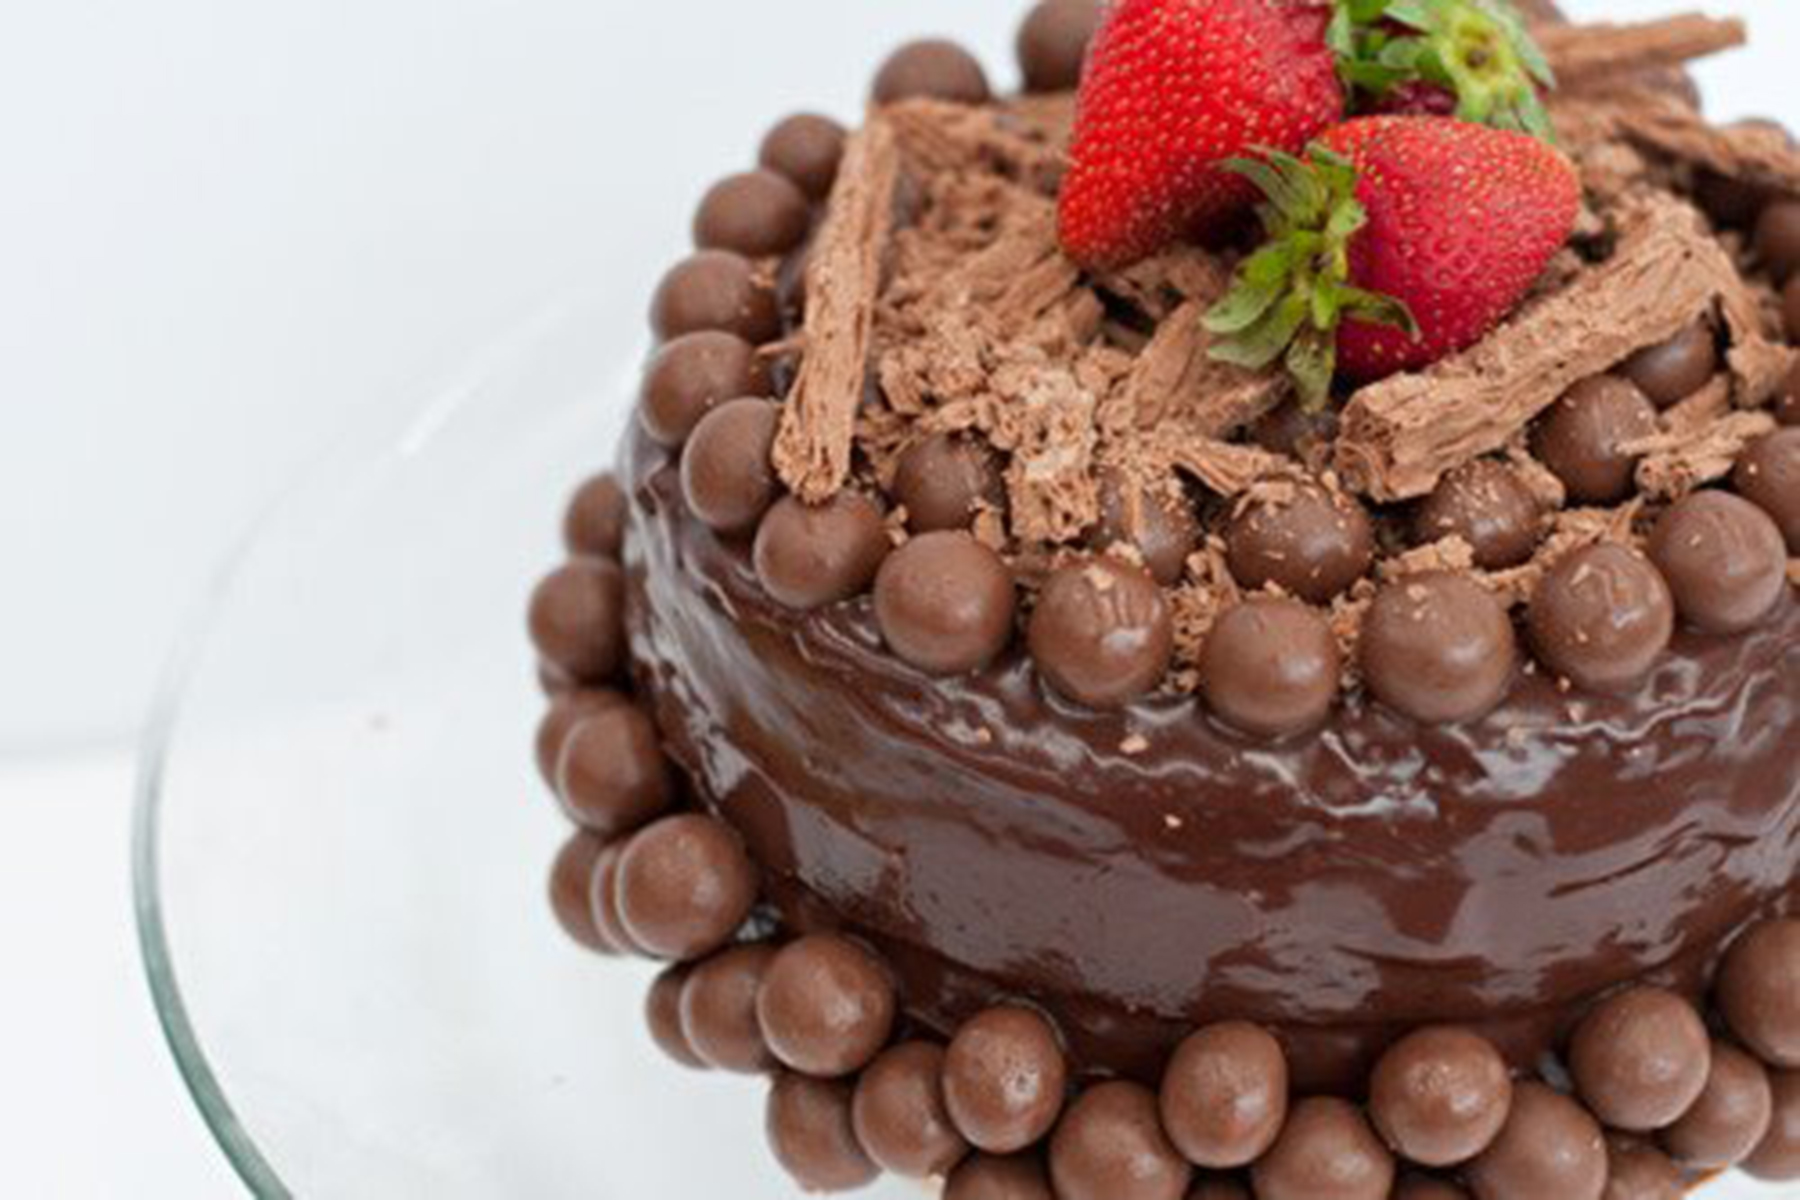 Chocolate Cake Wallpaper 1800x1200